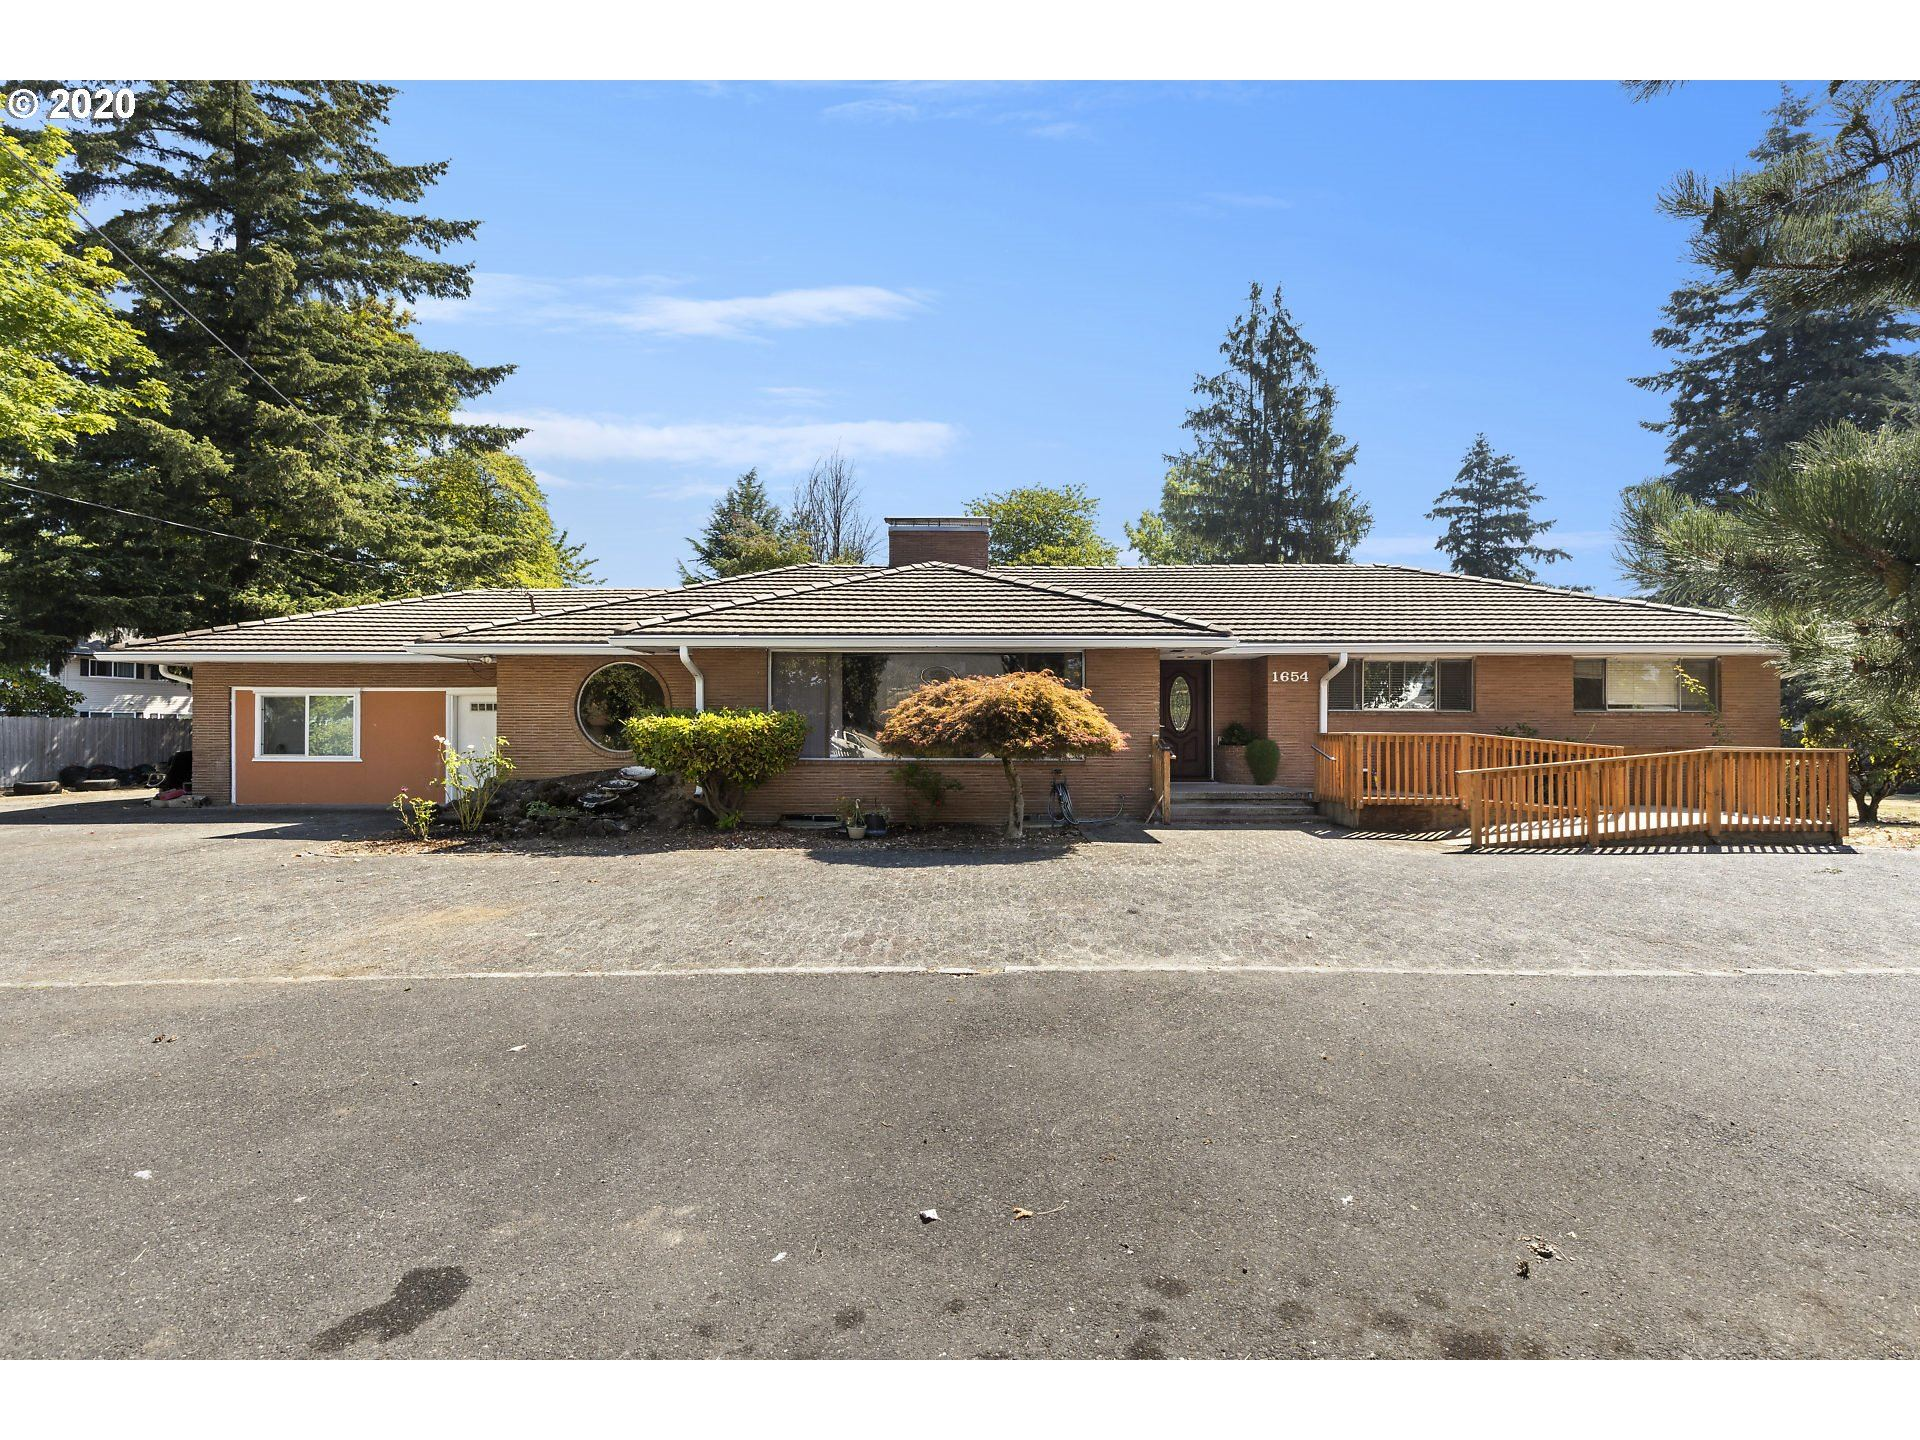 1654 SE 162ND AVE, Portland, OR 97233 - MLS#: 20206009